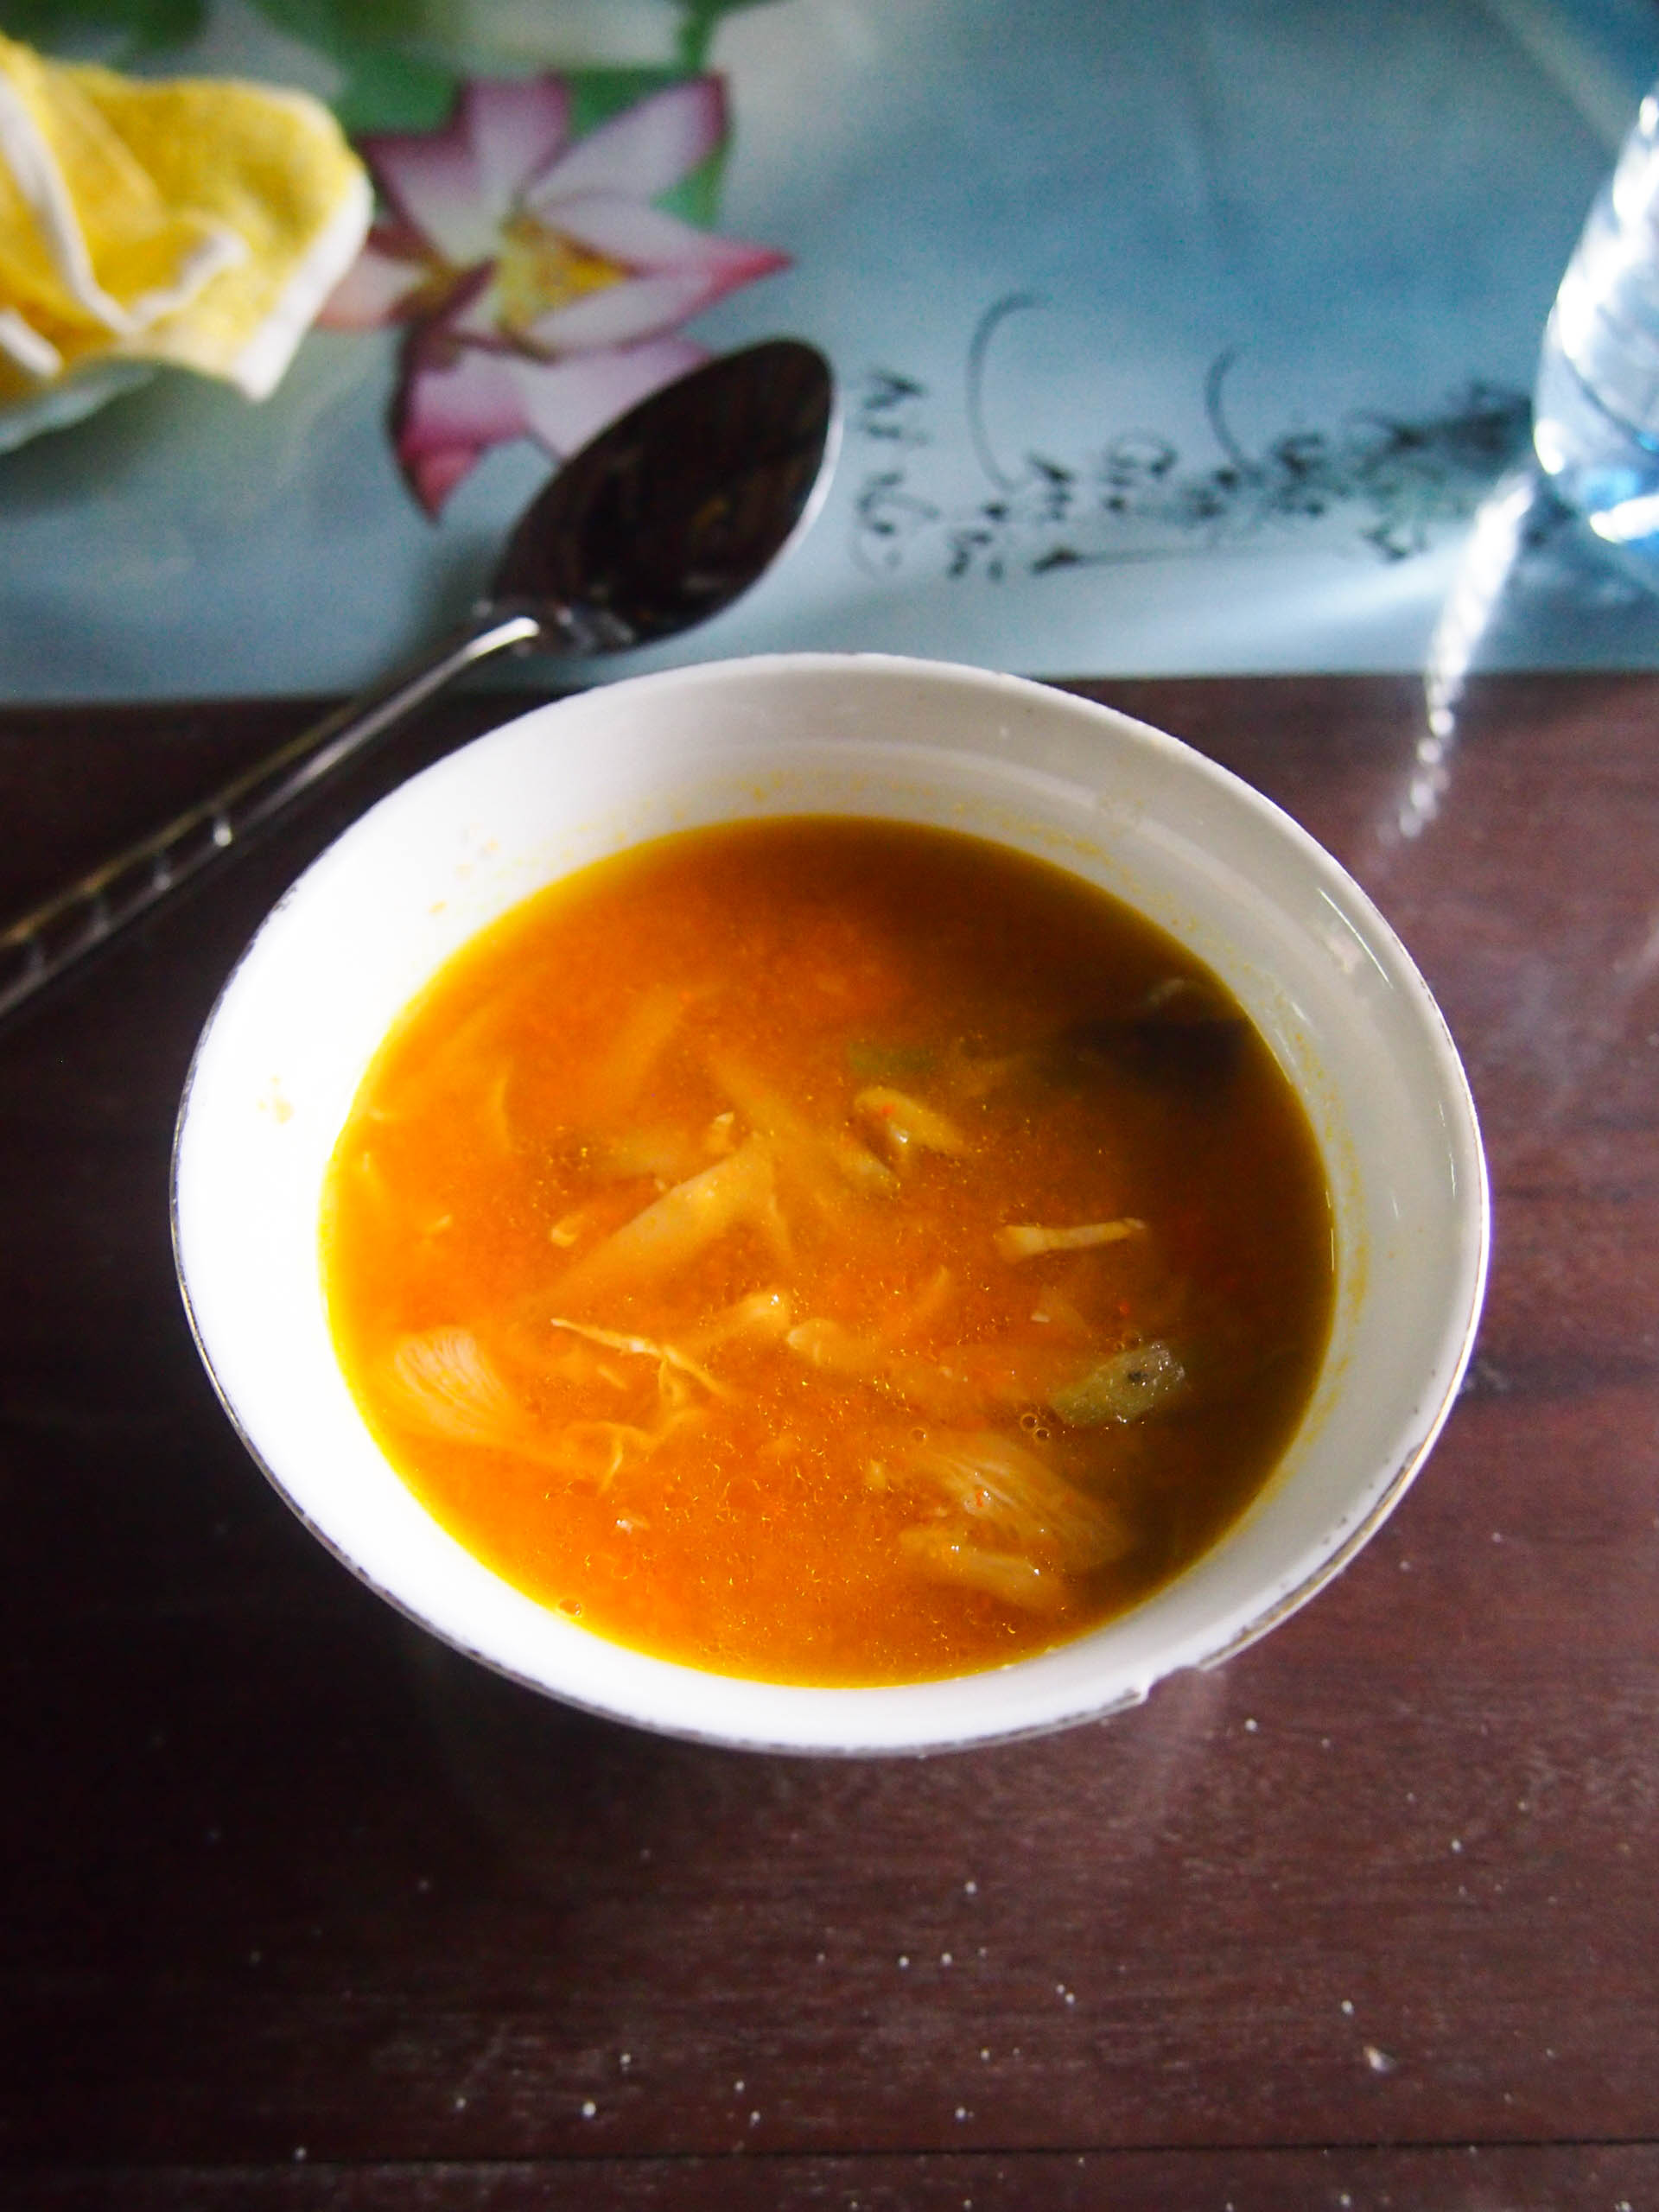 A vegetarian soup made with mushrooms, carrots and lotus seeds.